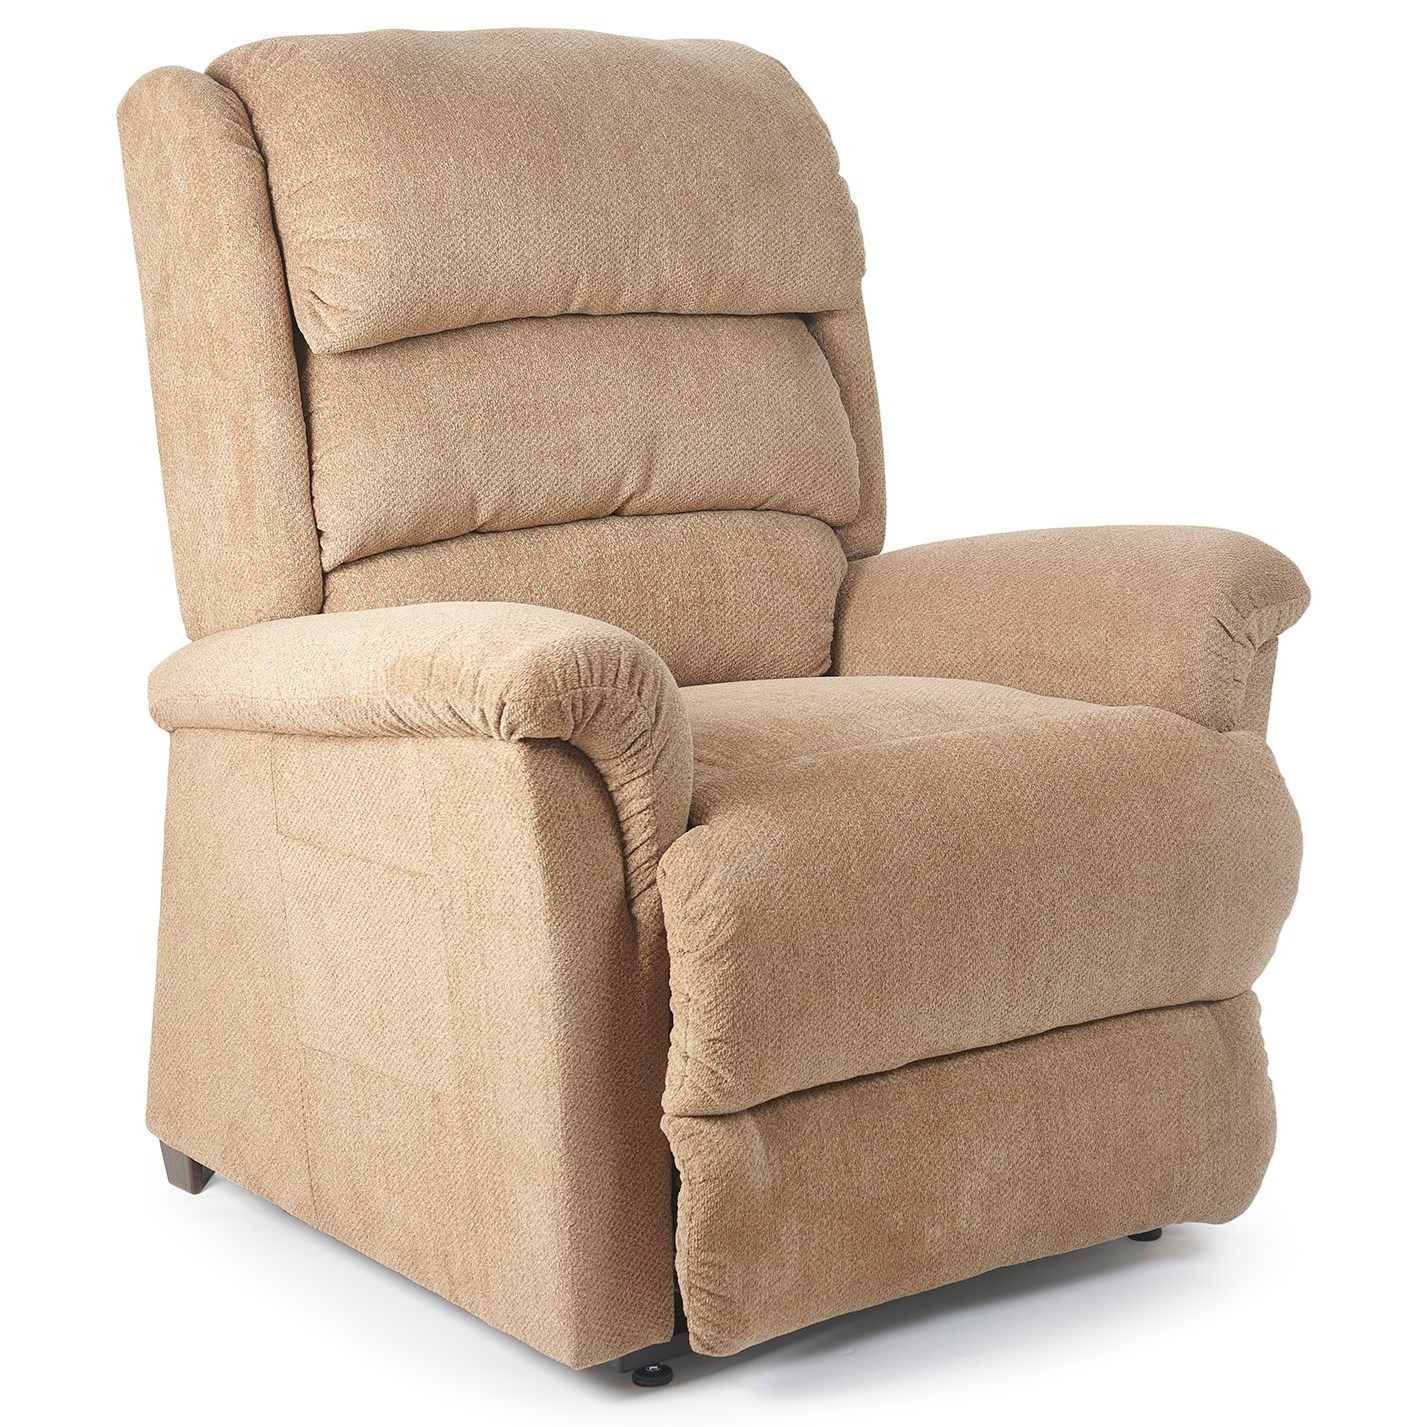 StellarComfort Polaris Large Power Lift Chair Recliner by UltraComfort at Darvin Furniture